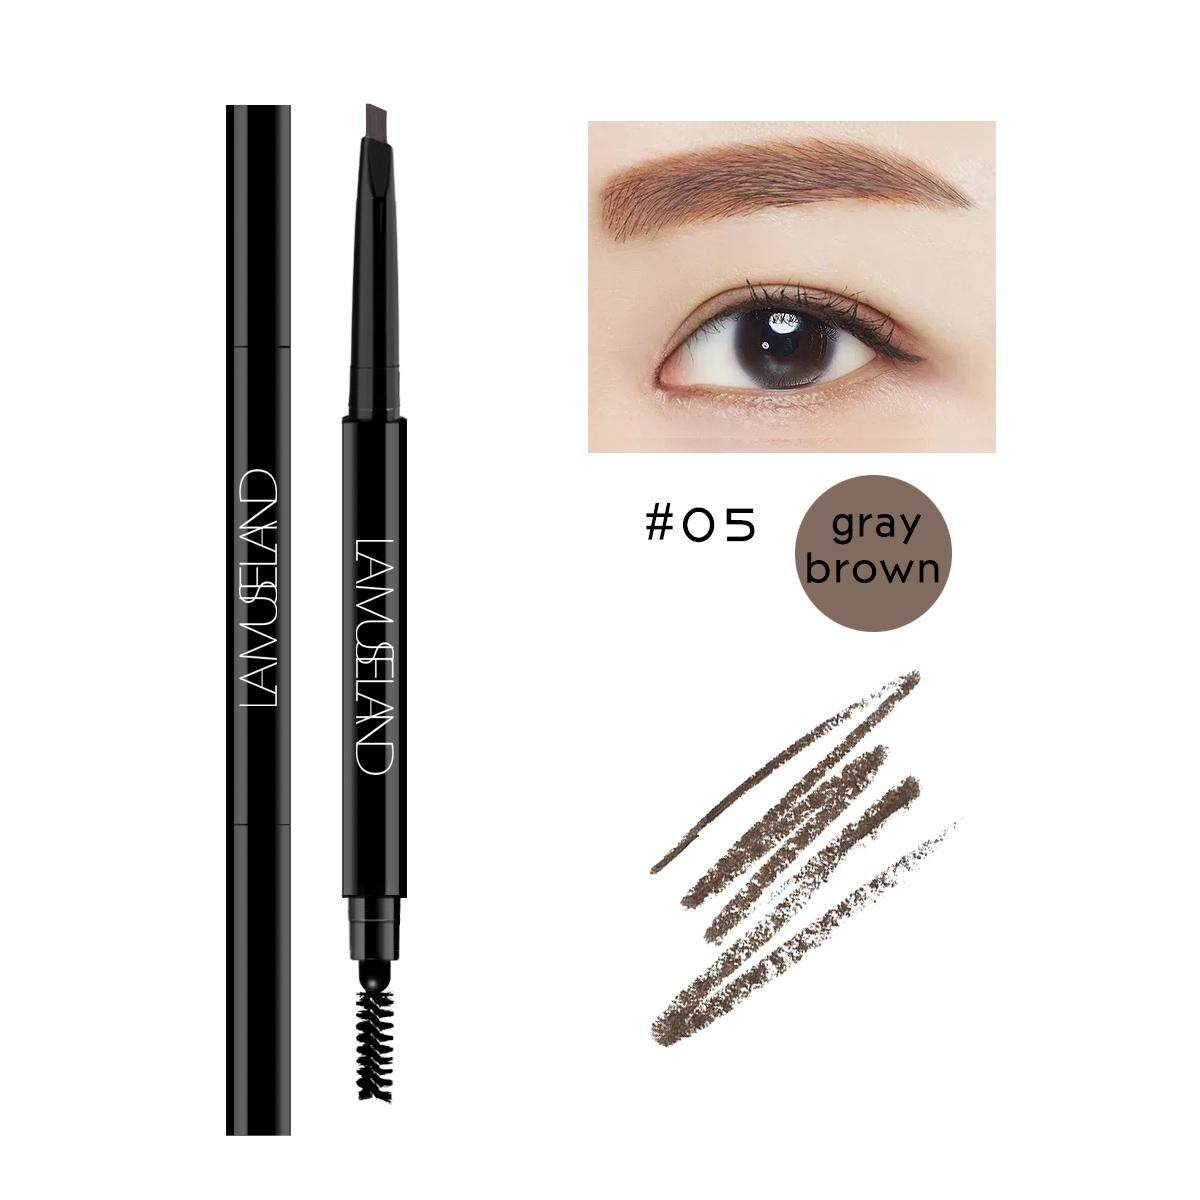 Lamuseland 5 Colors Long-Lasting Double-Headed Autorotation Eyebrow Pencil By Barbiecosmetic.